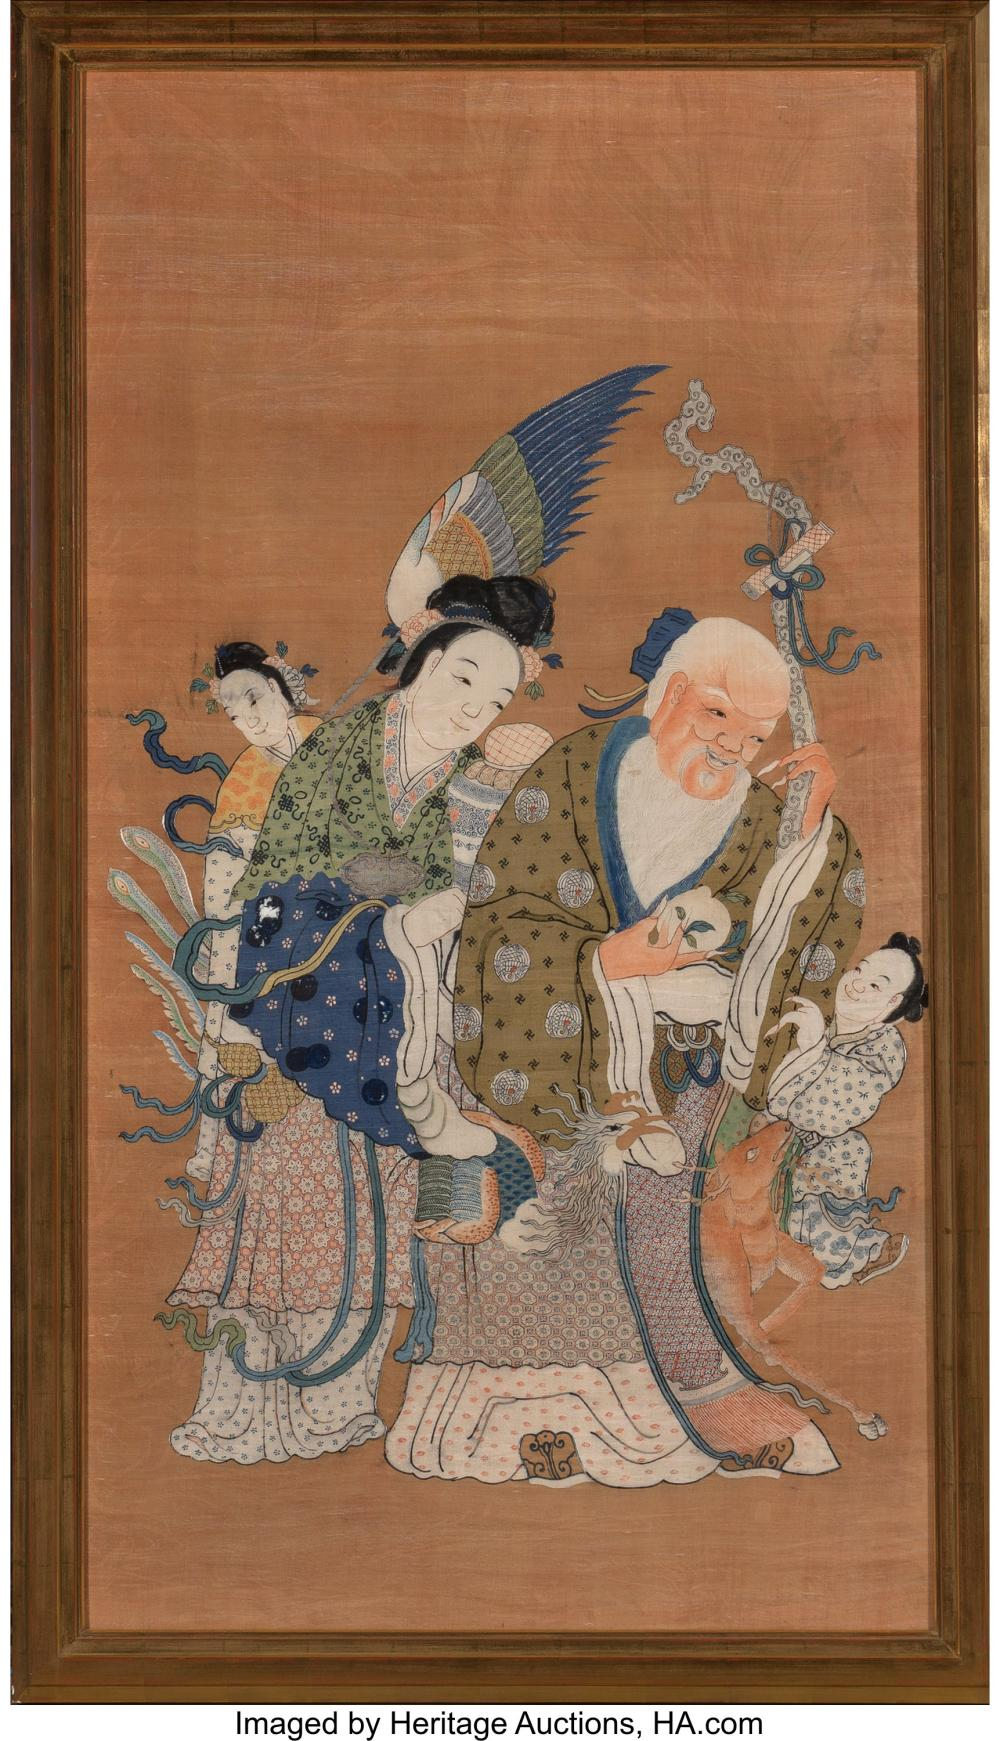 Lot 21264: A Chinese Kesi Silk Pictorial Textile, late Qing Dynasty 59 x 32 inches (149.9 x